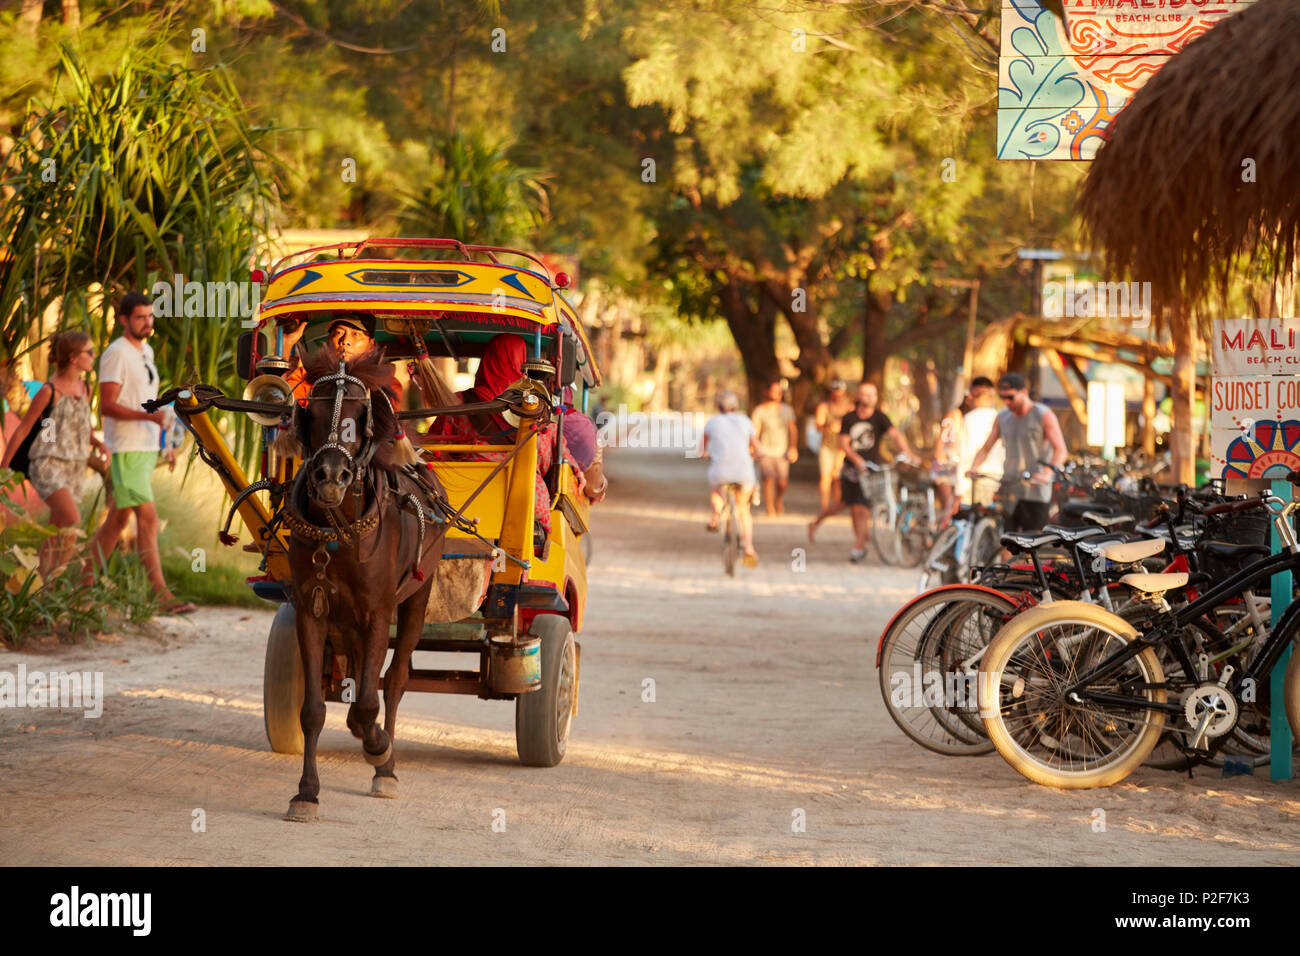 Horse carriage, Westseite, Gili Trawangan, Lombok, Indonesia - Stock Image